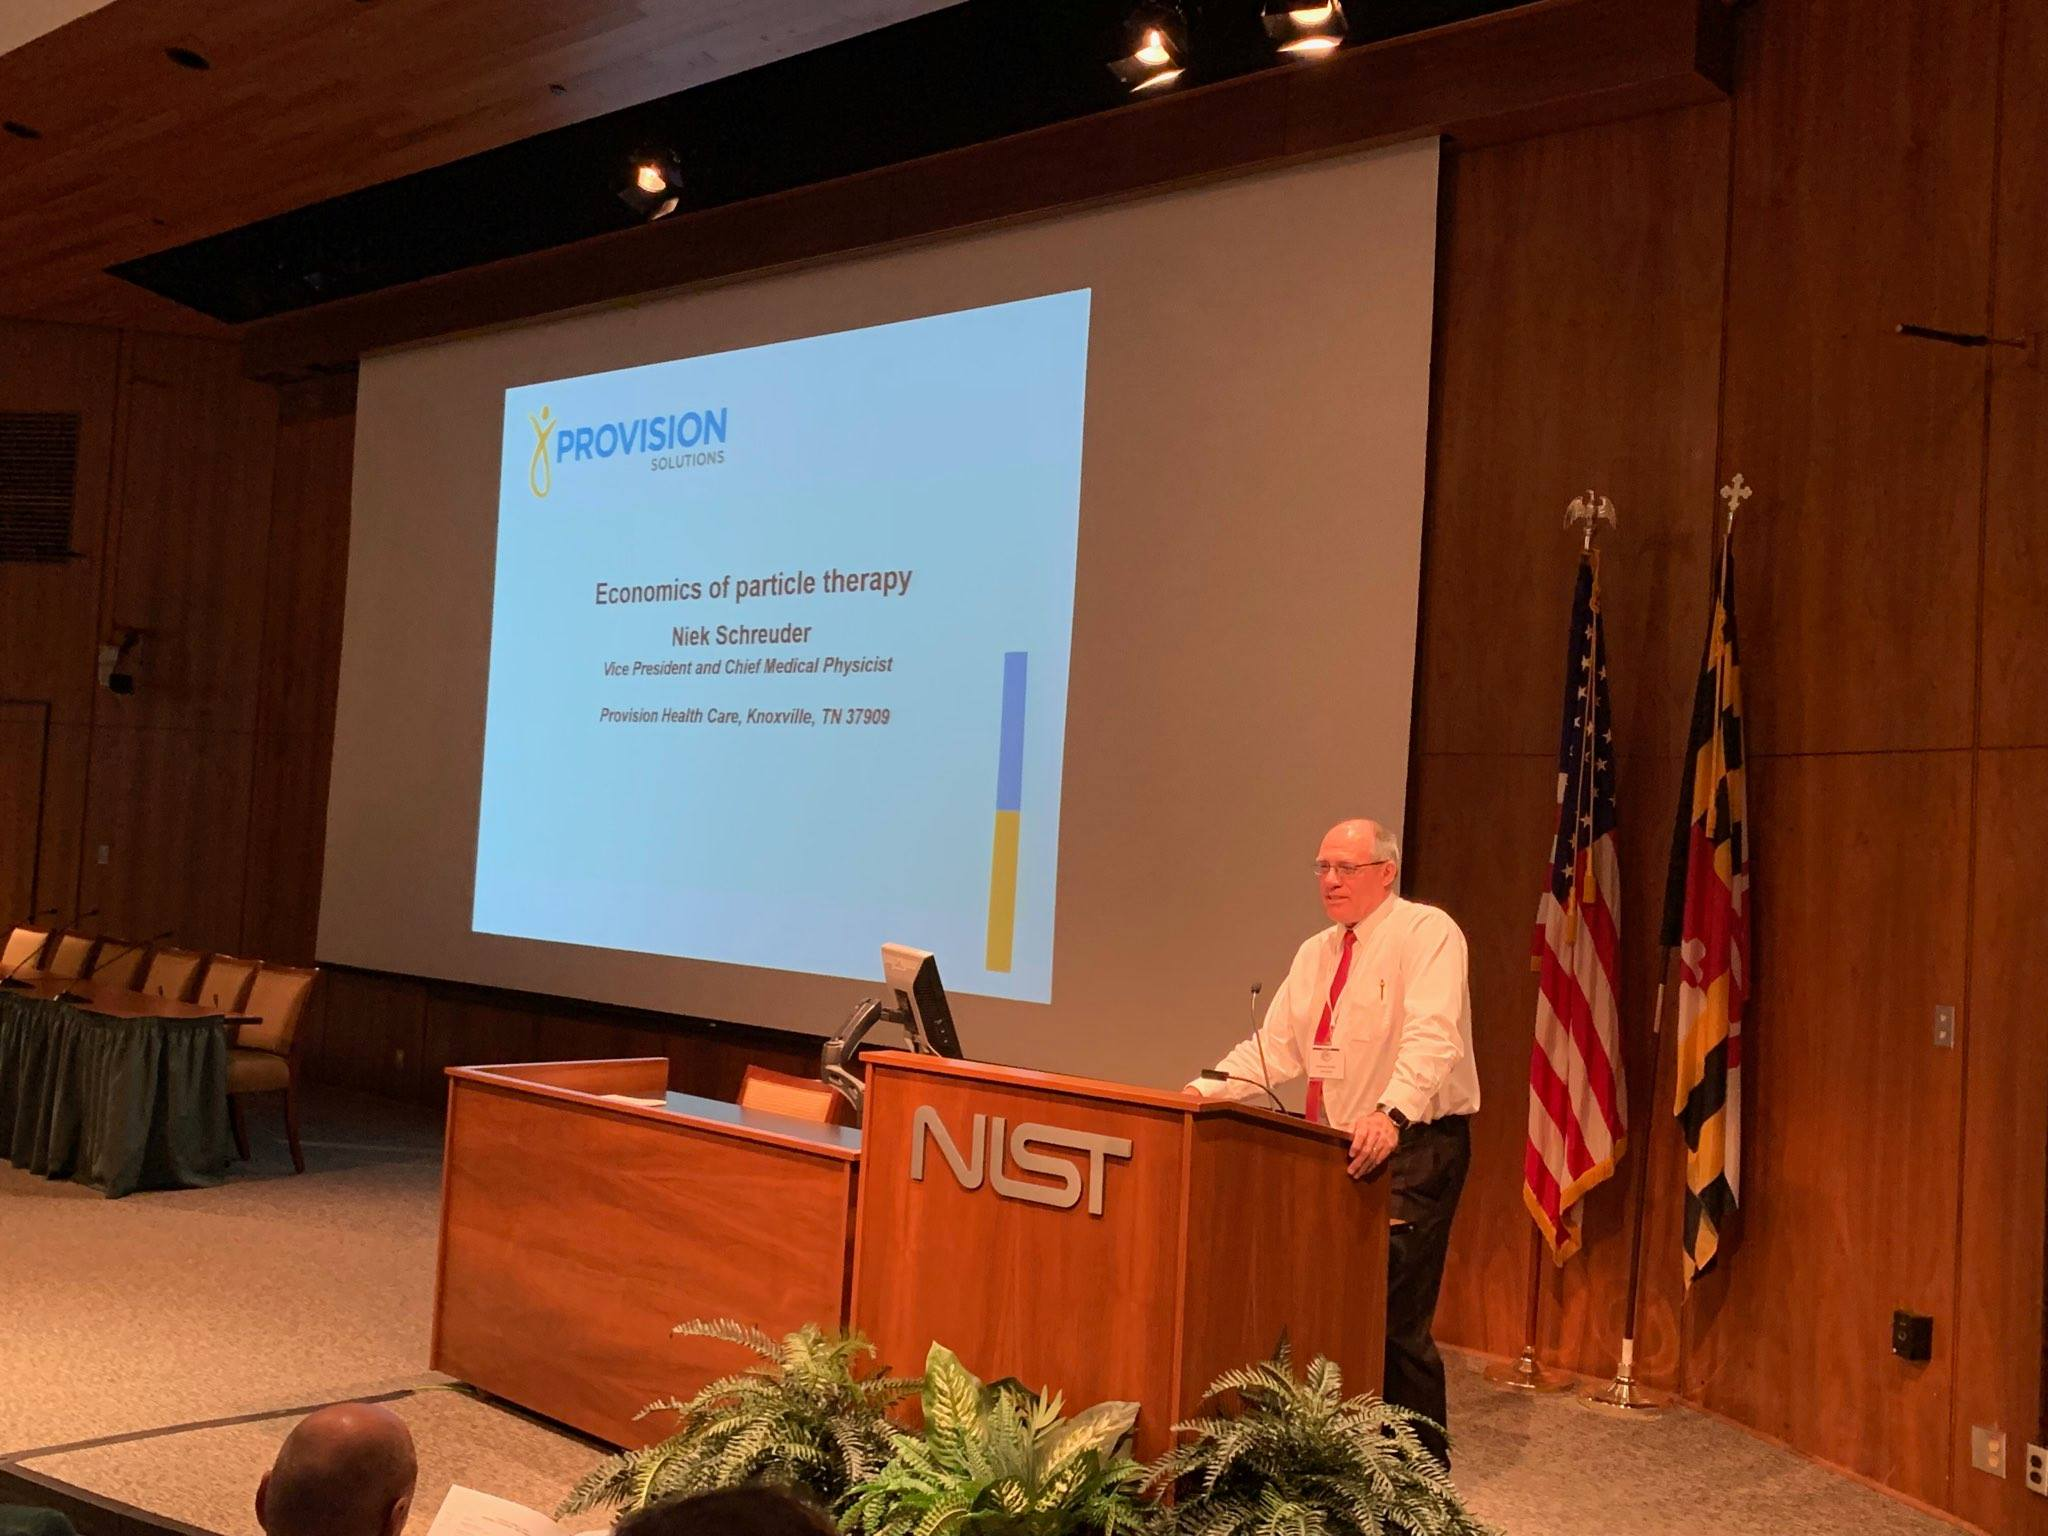 Niek Schreuder, Chief Medical Physicist at Provision, speaks at the 2019 CIRMS Annual Meeting.